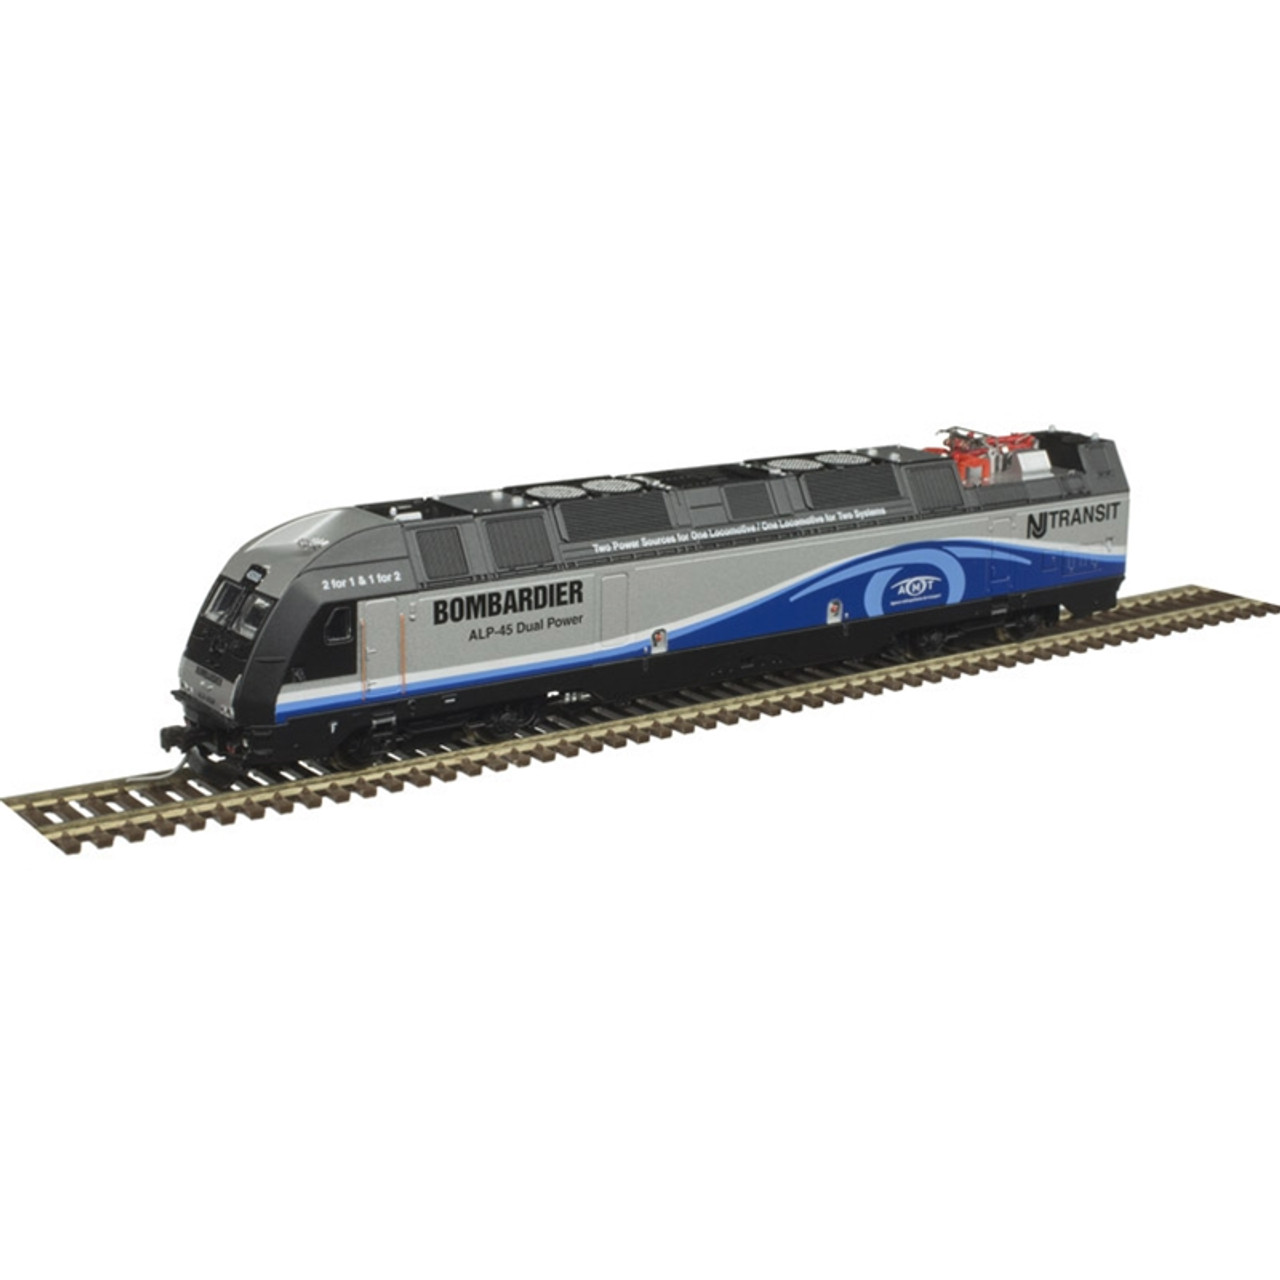 ATLAS 40004259 ALP-45DP - Bombardier Demonstrator AMT NJ Transit #4500 - Gold - DCC & Sound (SCALE=N) Part # 150-40004259